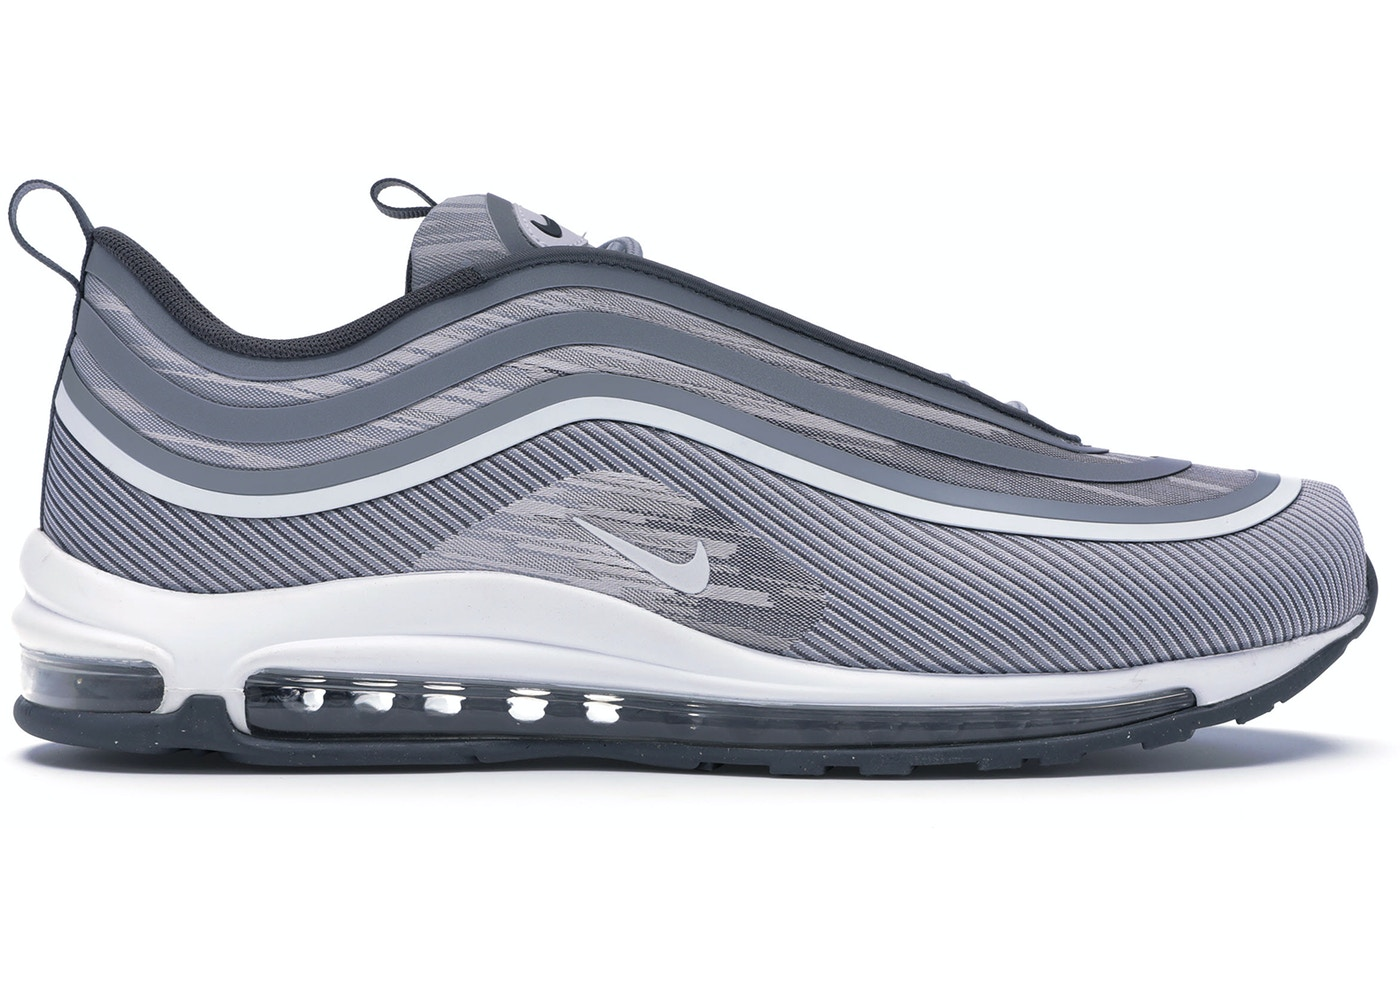 67c7aee131a1a Air Max 97 Ultra 17 Wolf Grey Dark Grey - 918356-007